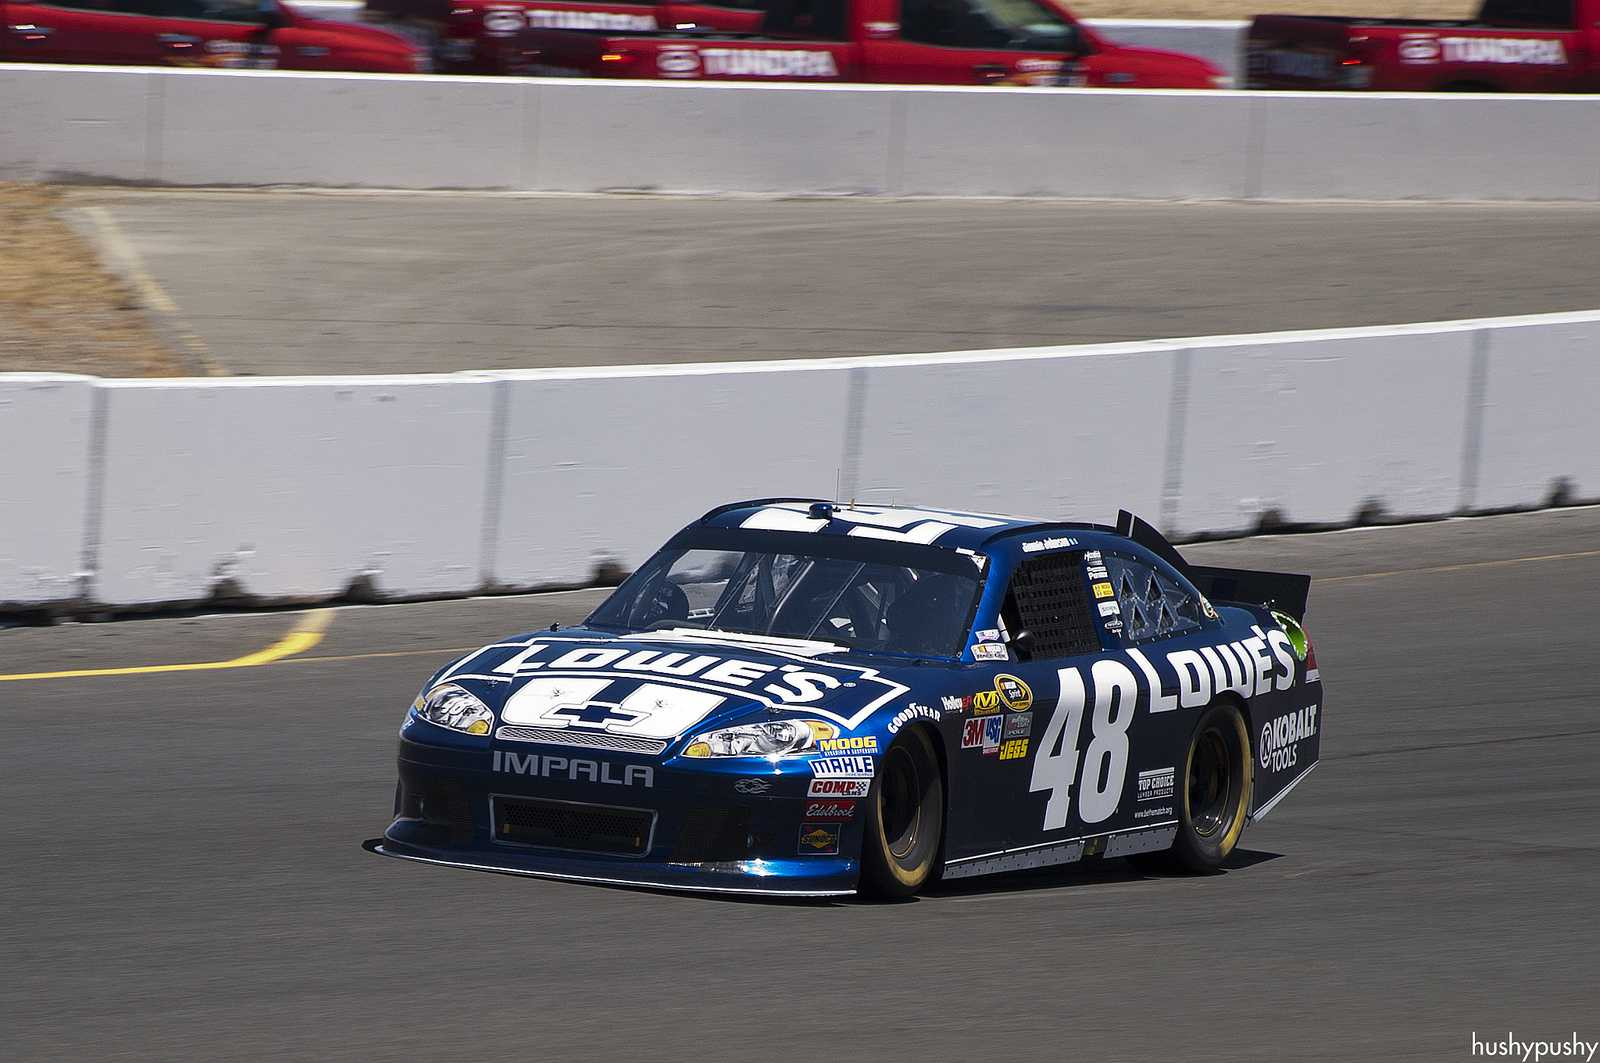 Jimmie Johnson racing for the win